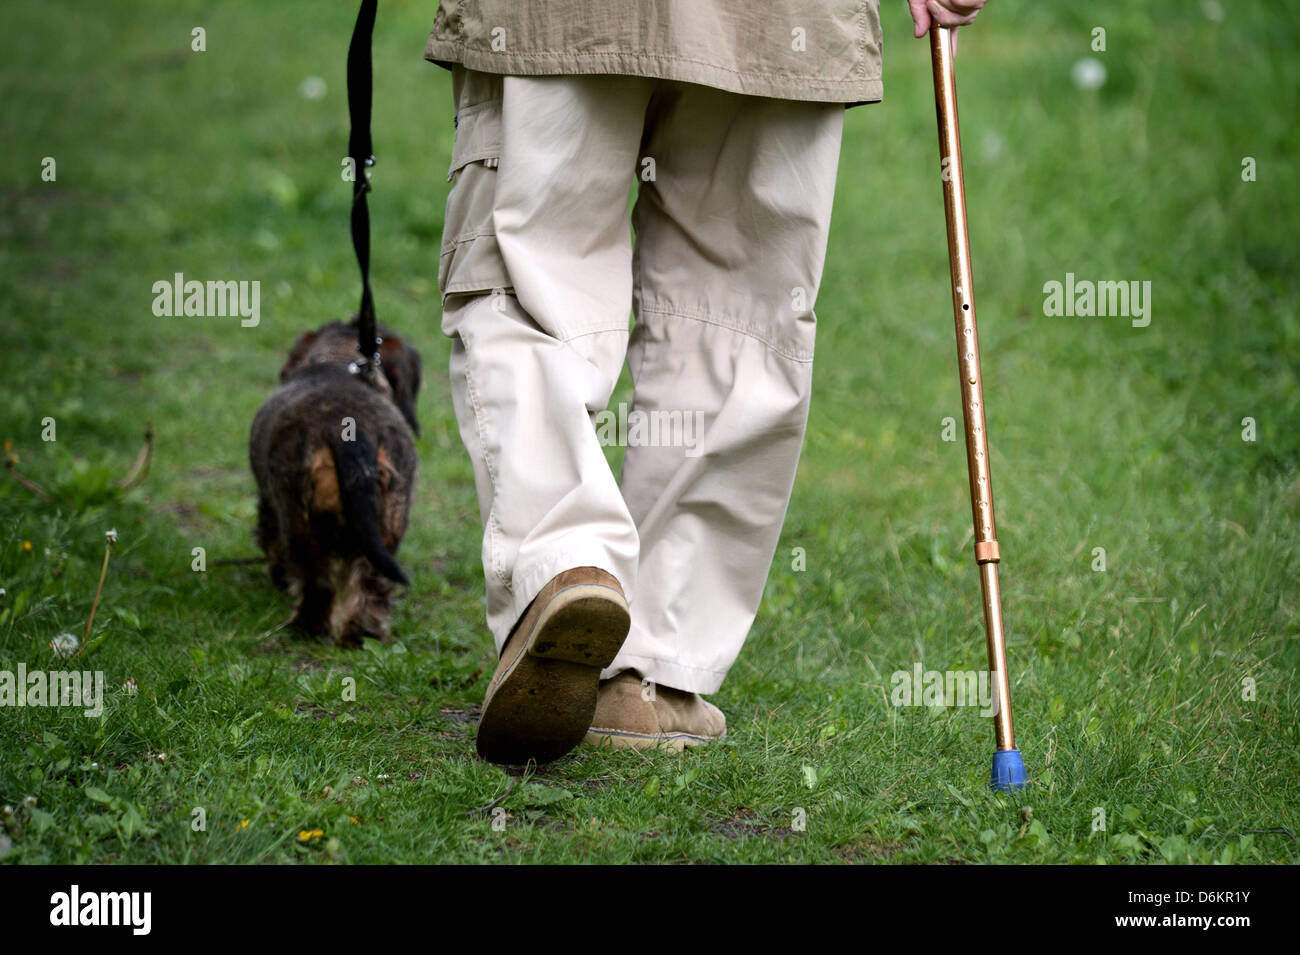 Berlin, Germany, an older man walking with his dog for a walk - Stock Image